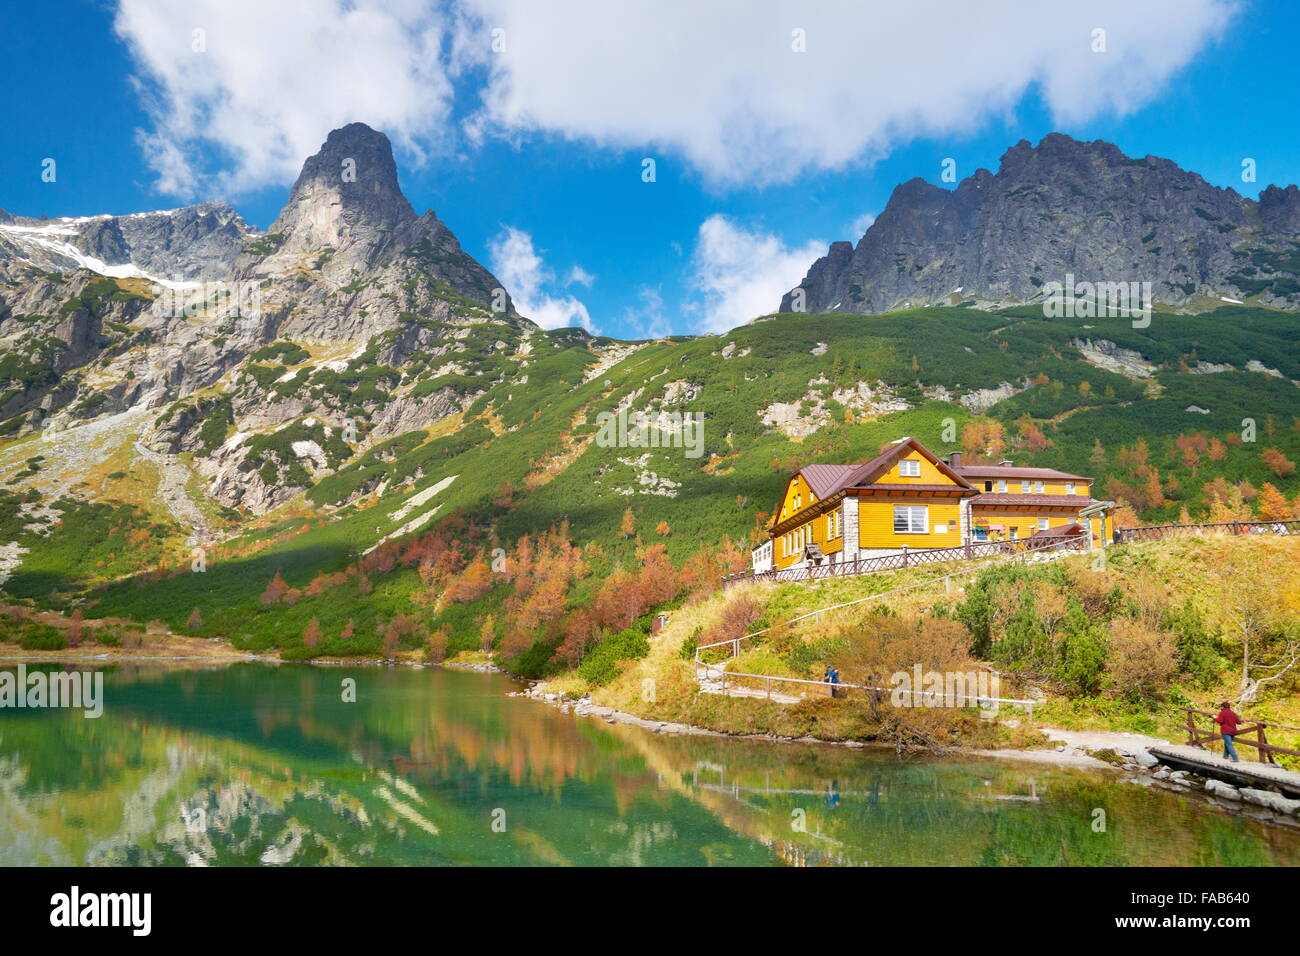 The hostel at Green Pond - High Tatras, Slovak - Stock Image